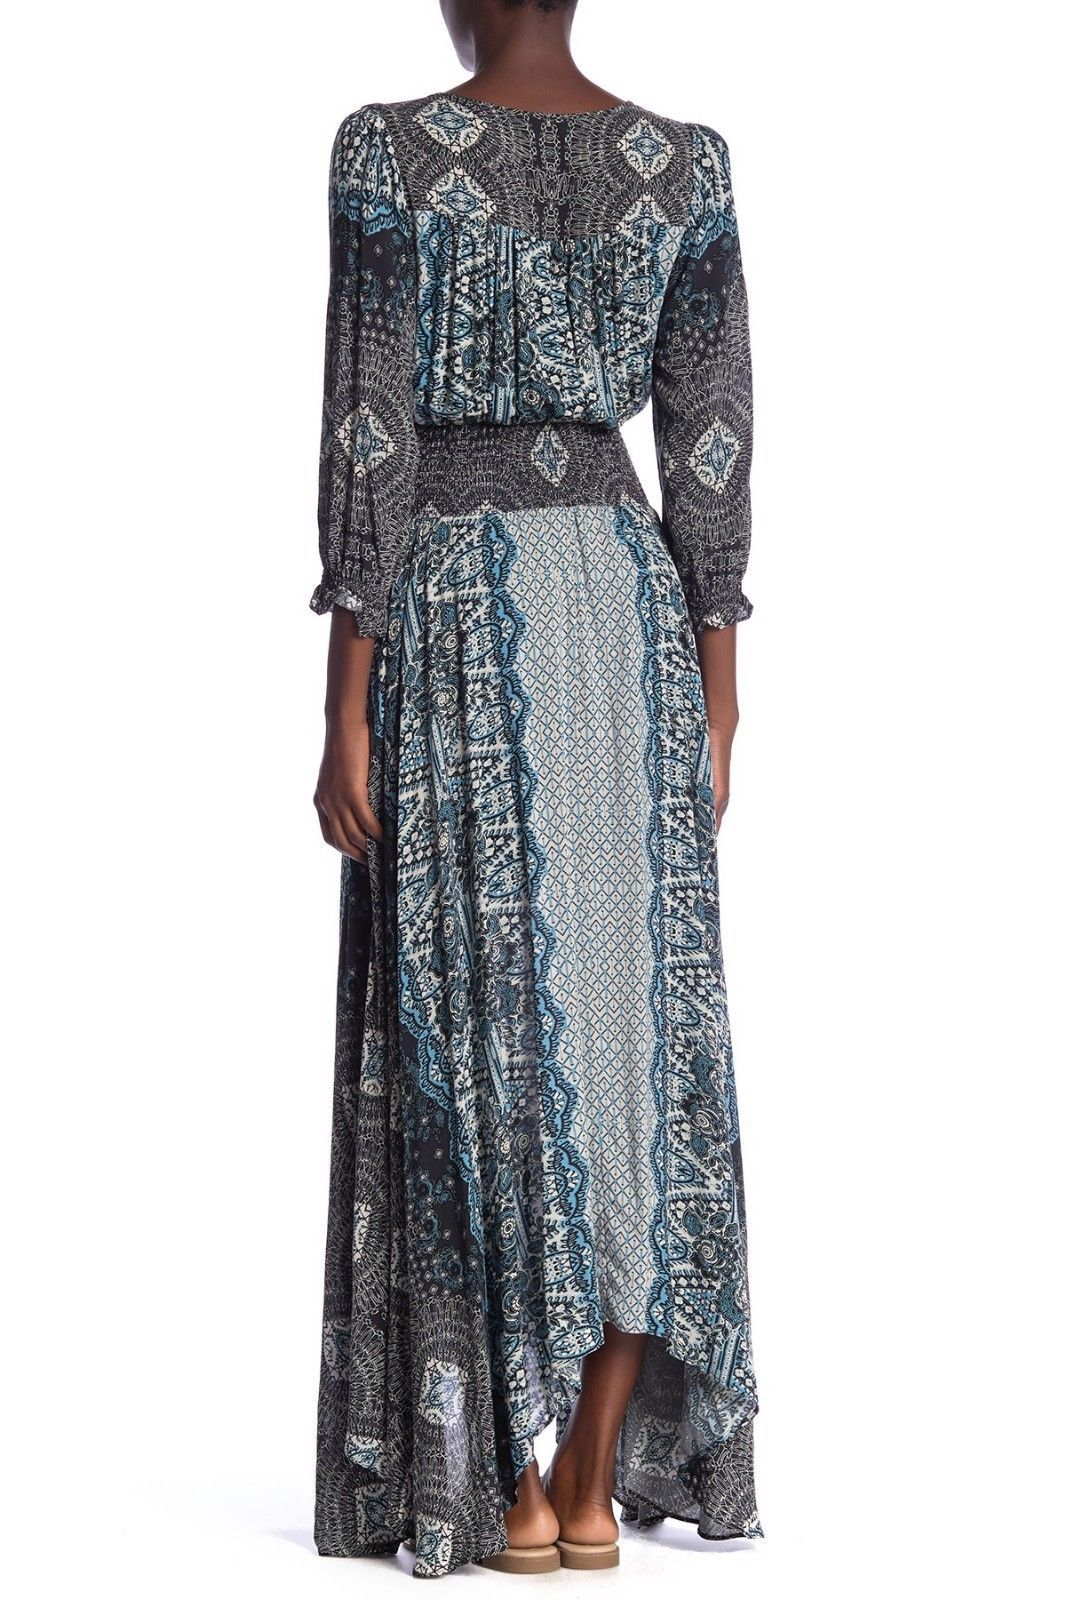 NWT FREE PEOPLE MEXICALI ROSE BLACK COMBO MAXI DRESS M